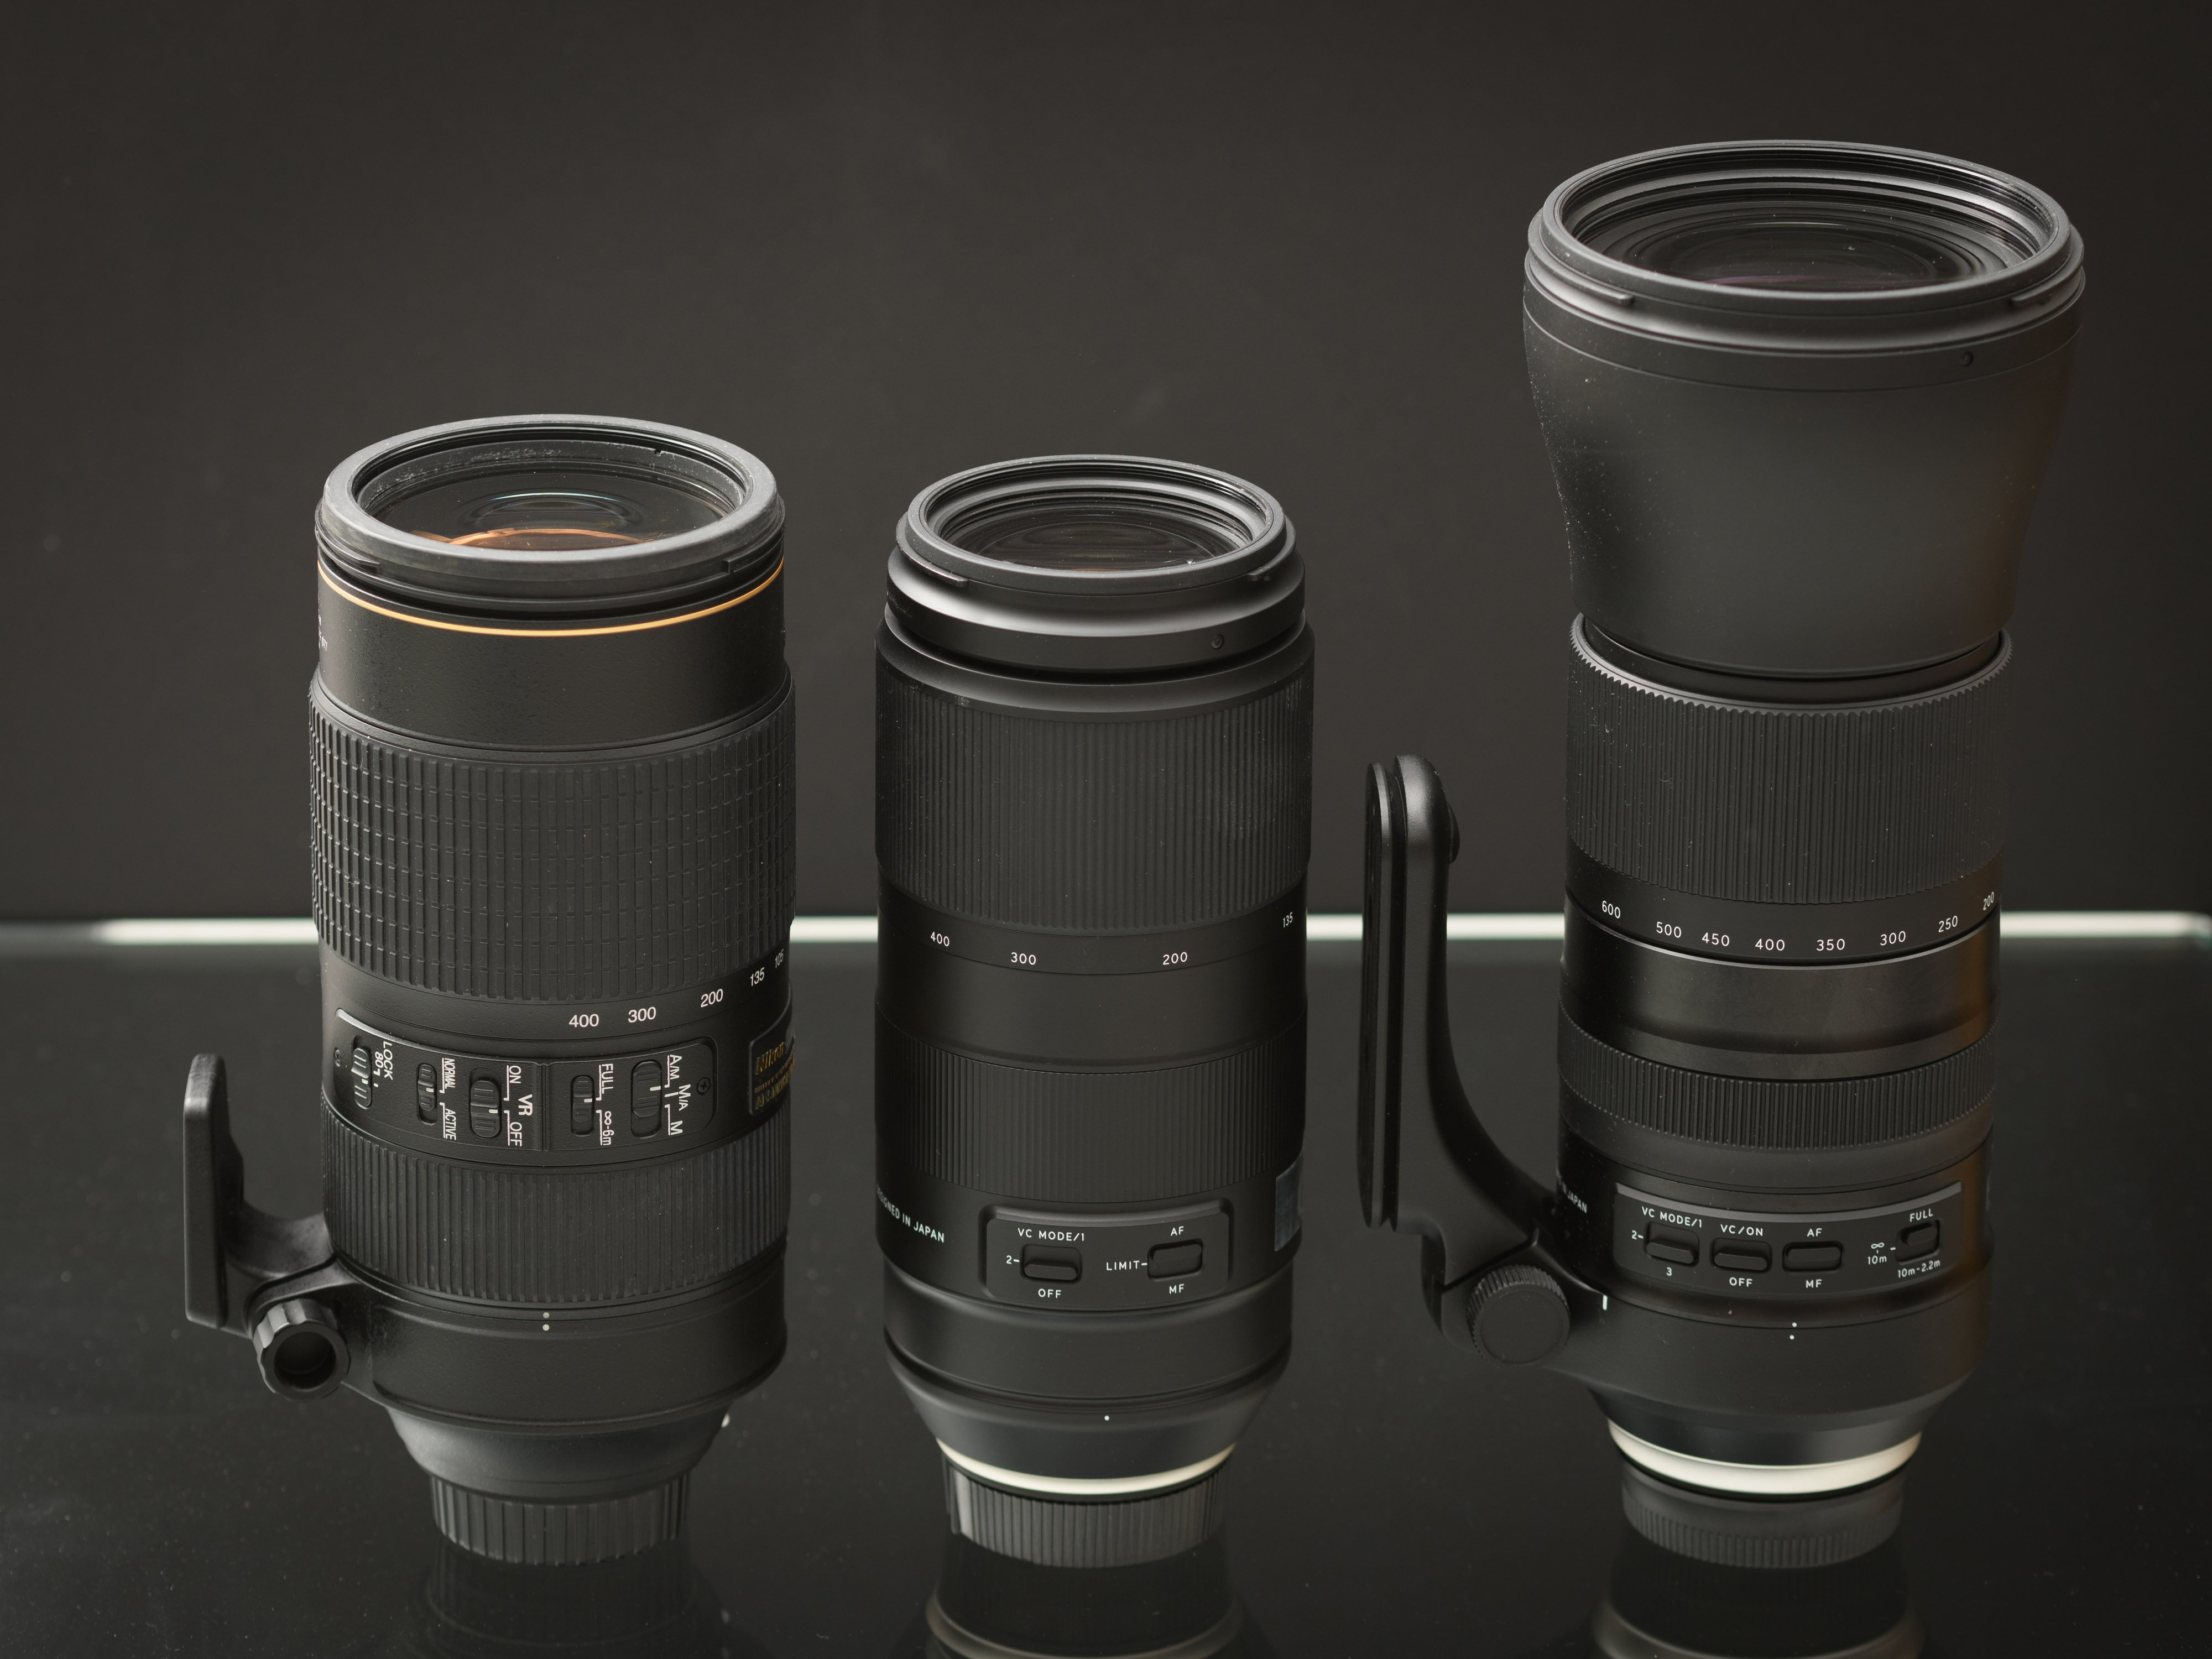 Tamron 100-400mm VC review - | Cameralabs